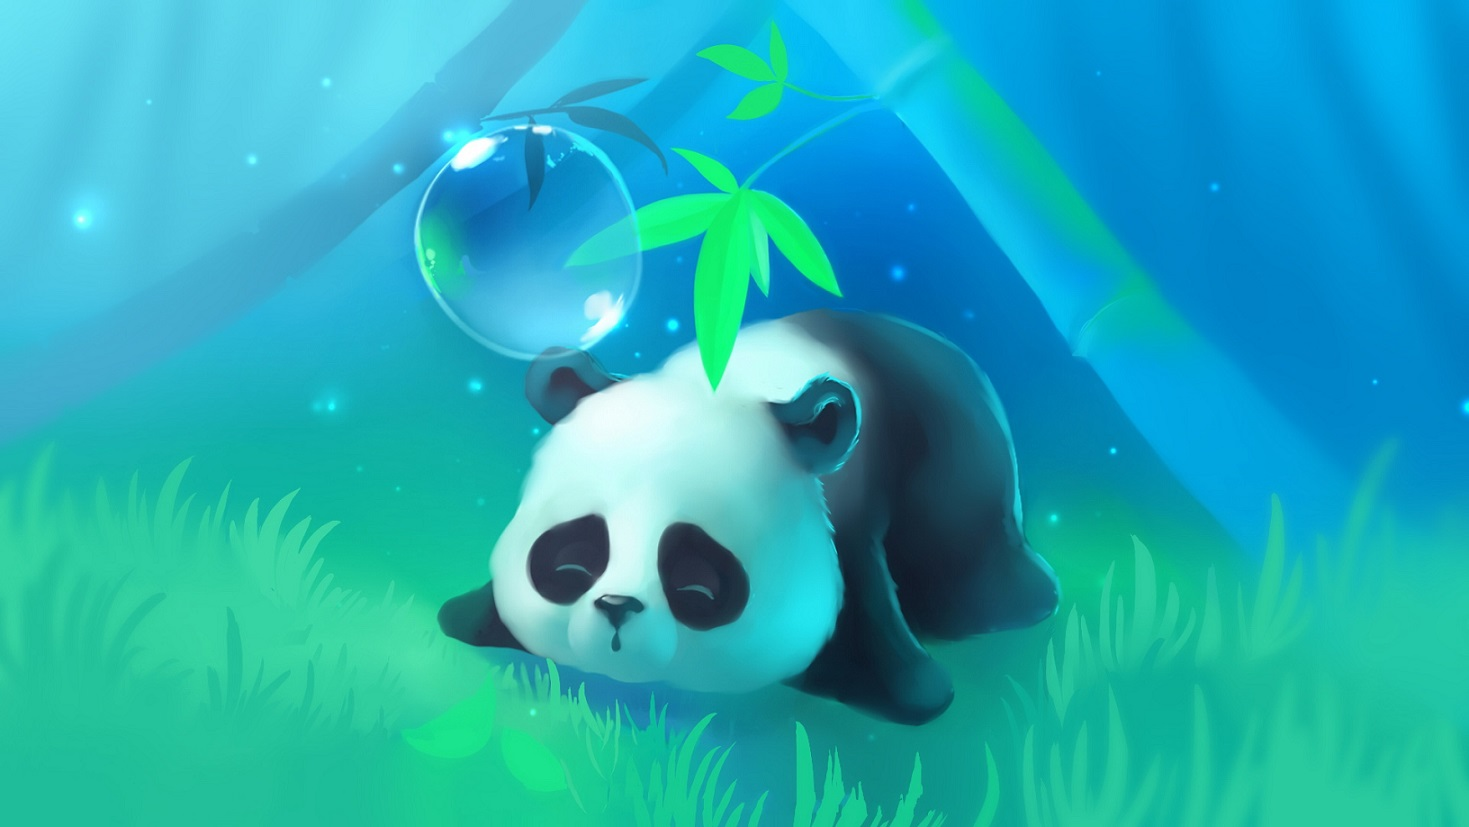 Collection of Cute Panda Wallpaper on HDWallpapers